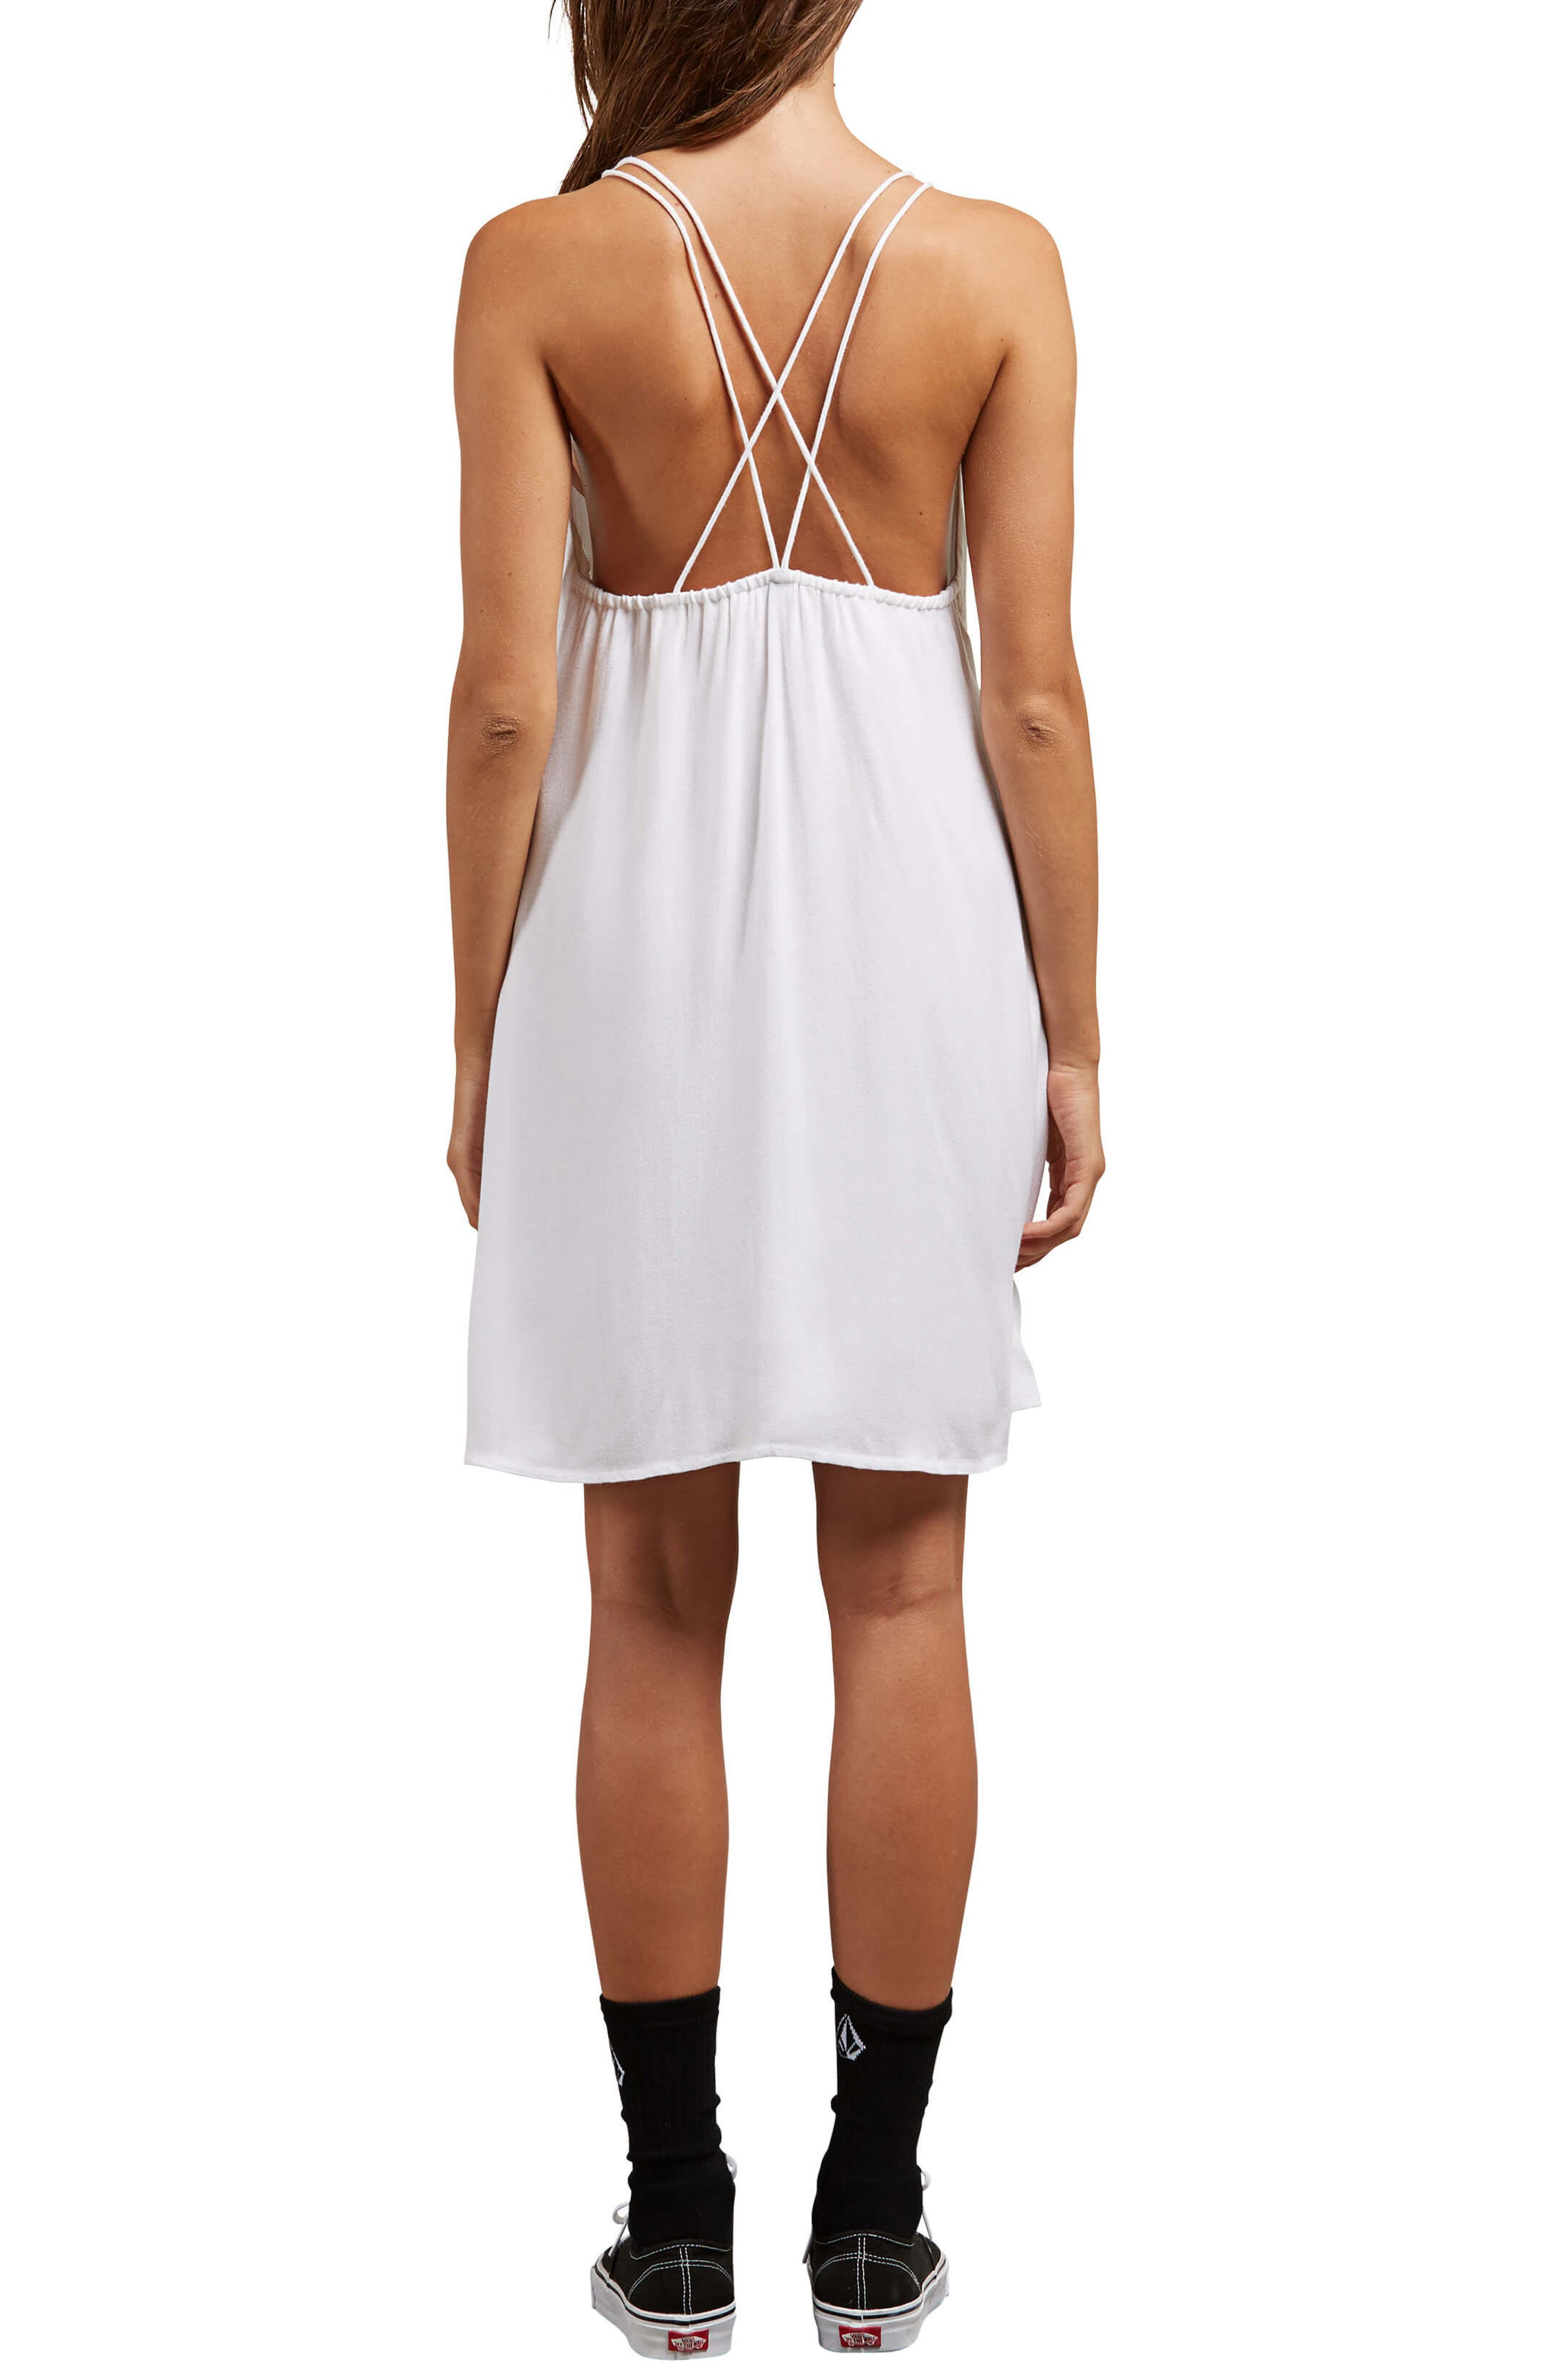 You Want This Strappy Dress,                             Alternate thumbnail 2, color,                             White